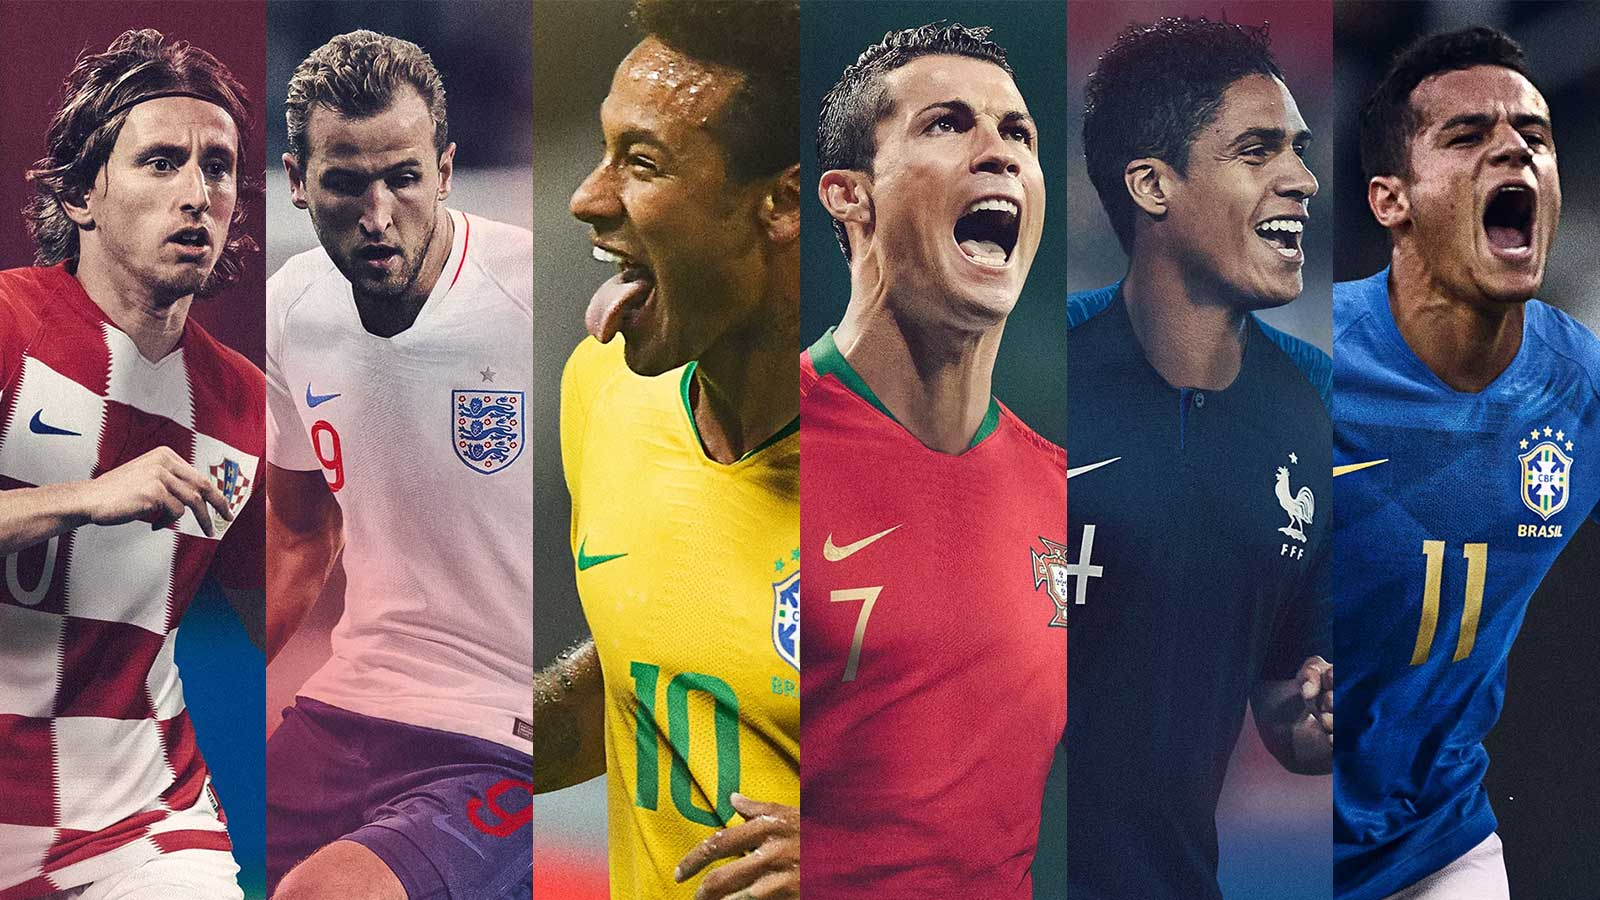 new product 7ac45 e3b2a All Nike 2018 World Cup Kits Released | Futbolgrid